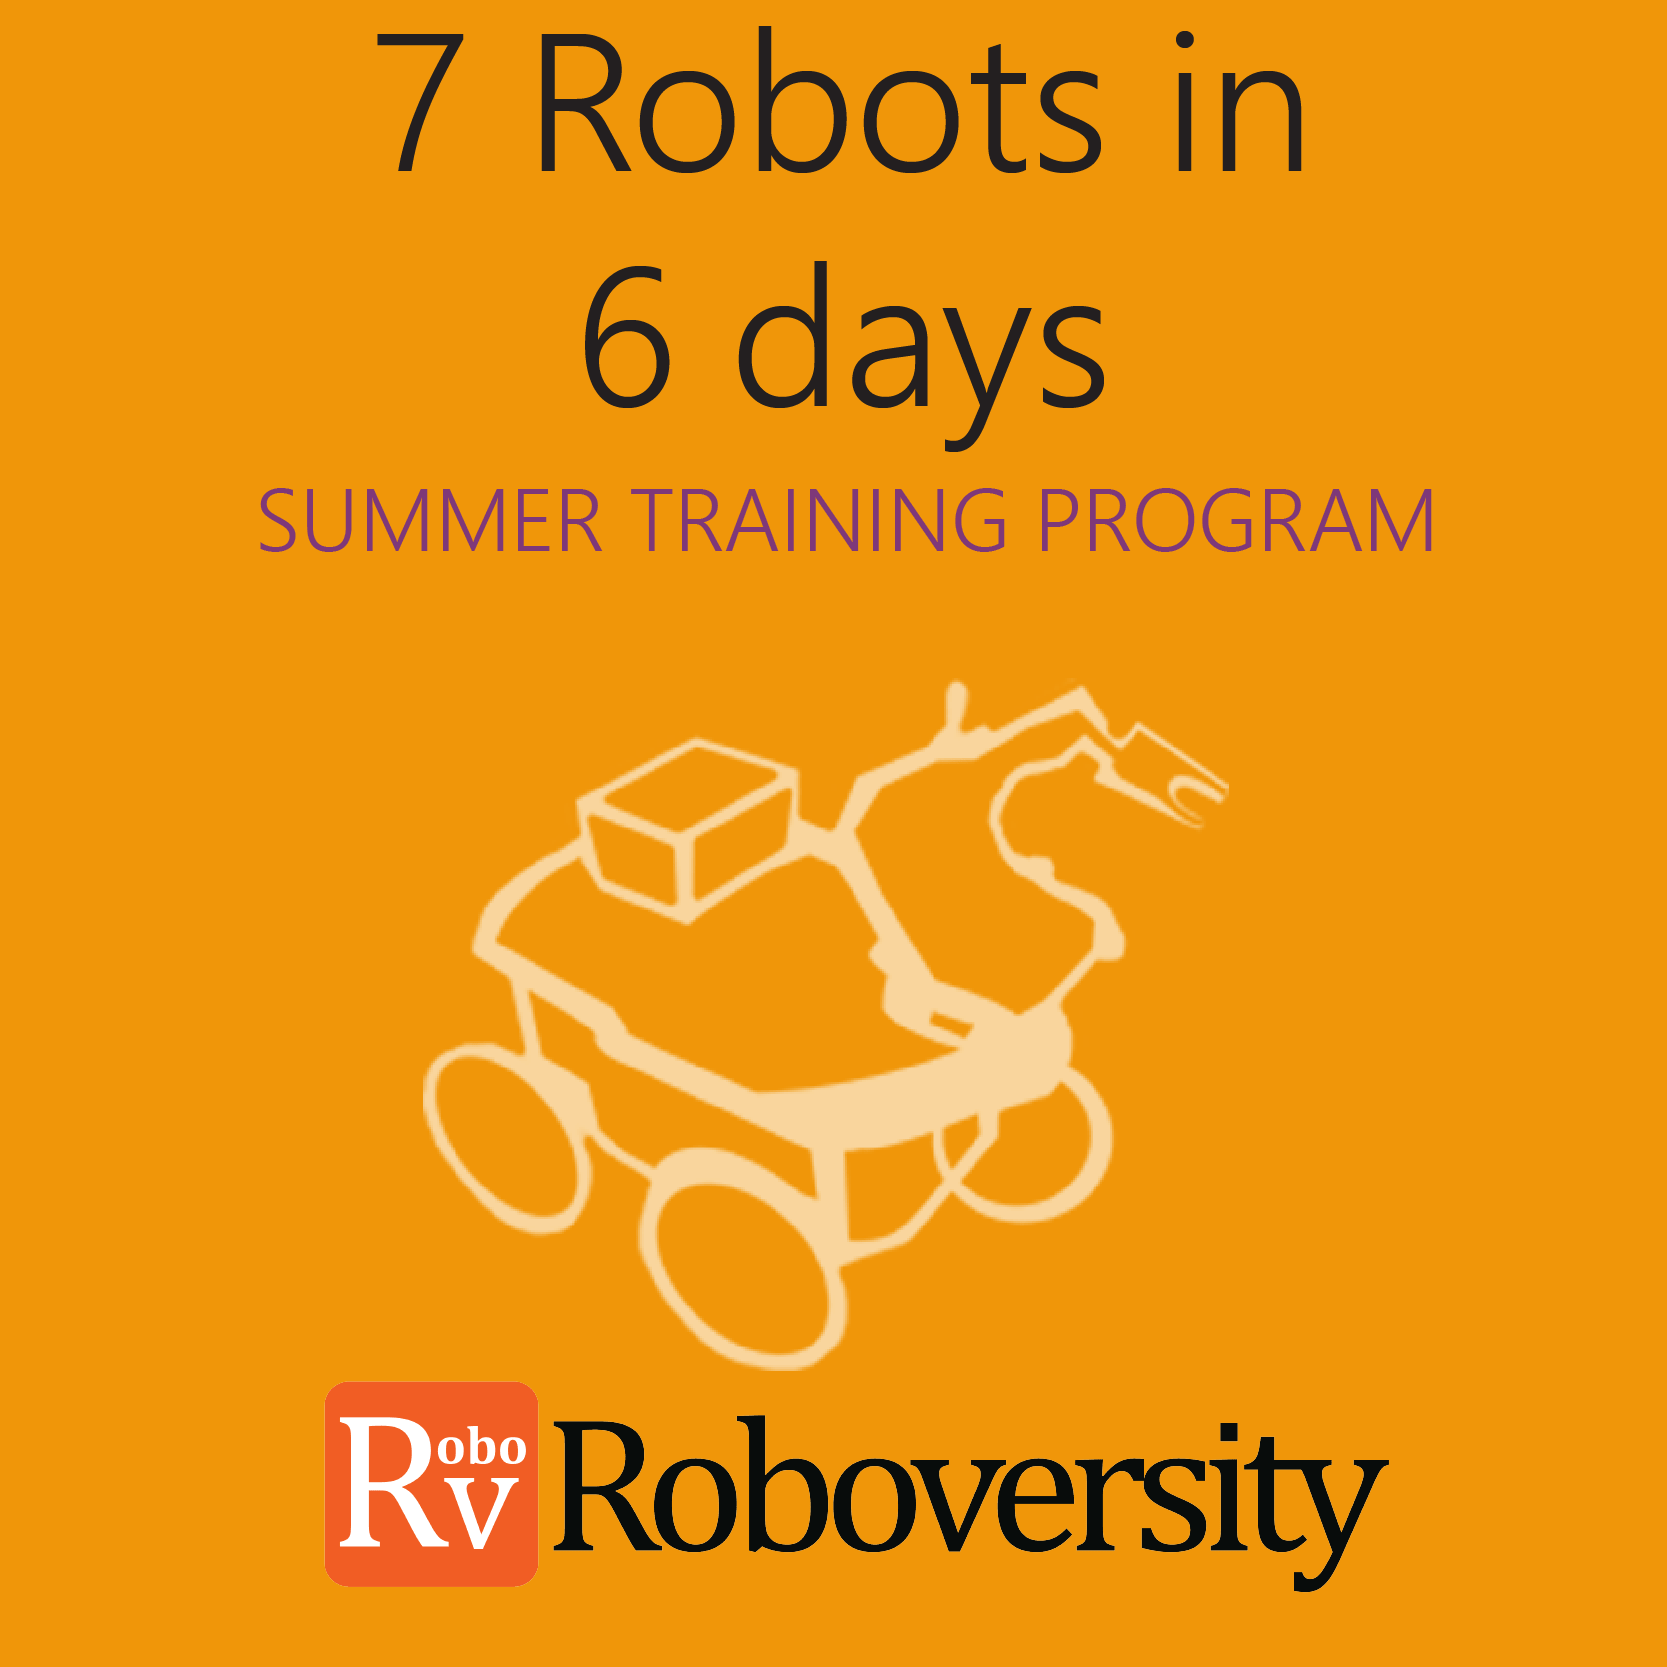 Summer Training Program in Robotics - 7 Robots in 6 Days  at Skyfi Labs Center Workshop